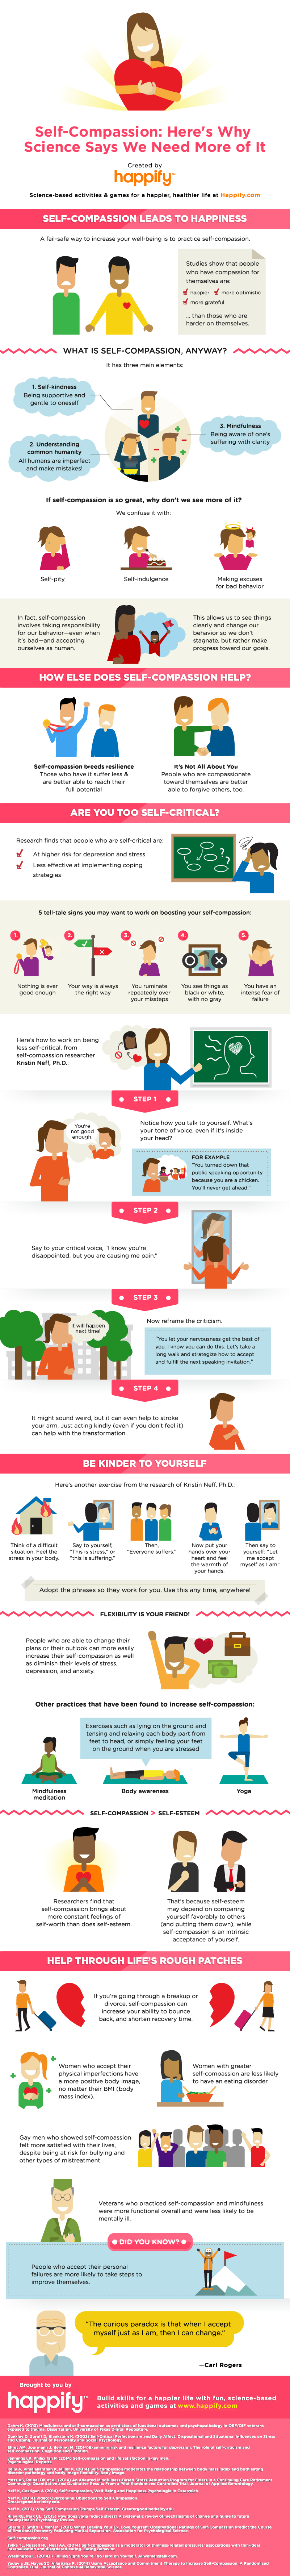 6 Steps To Boost Your Self-Compassion Infographic